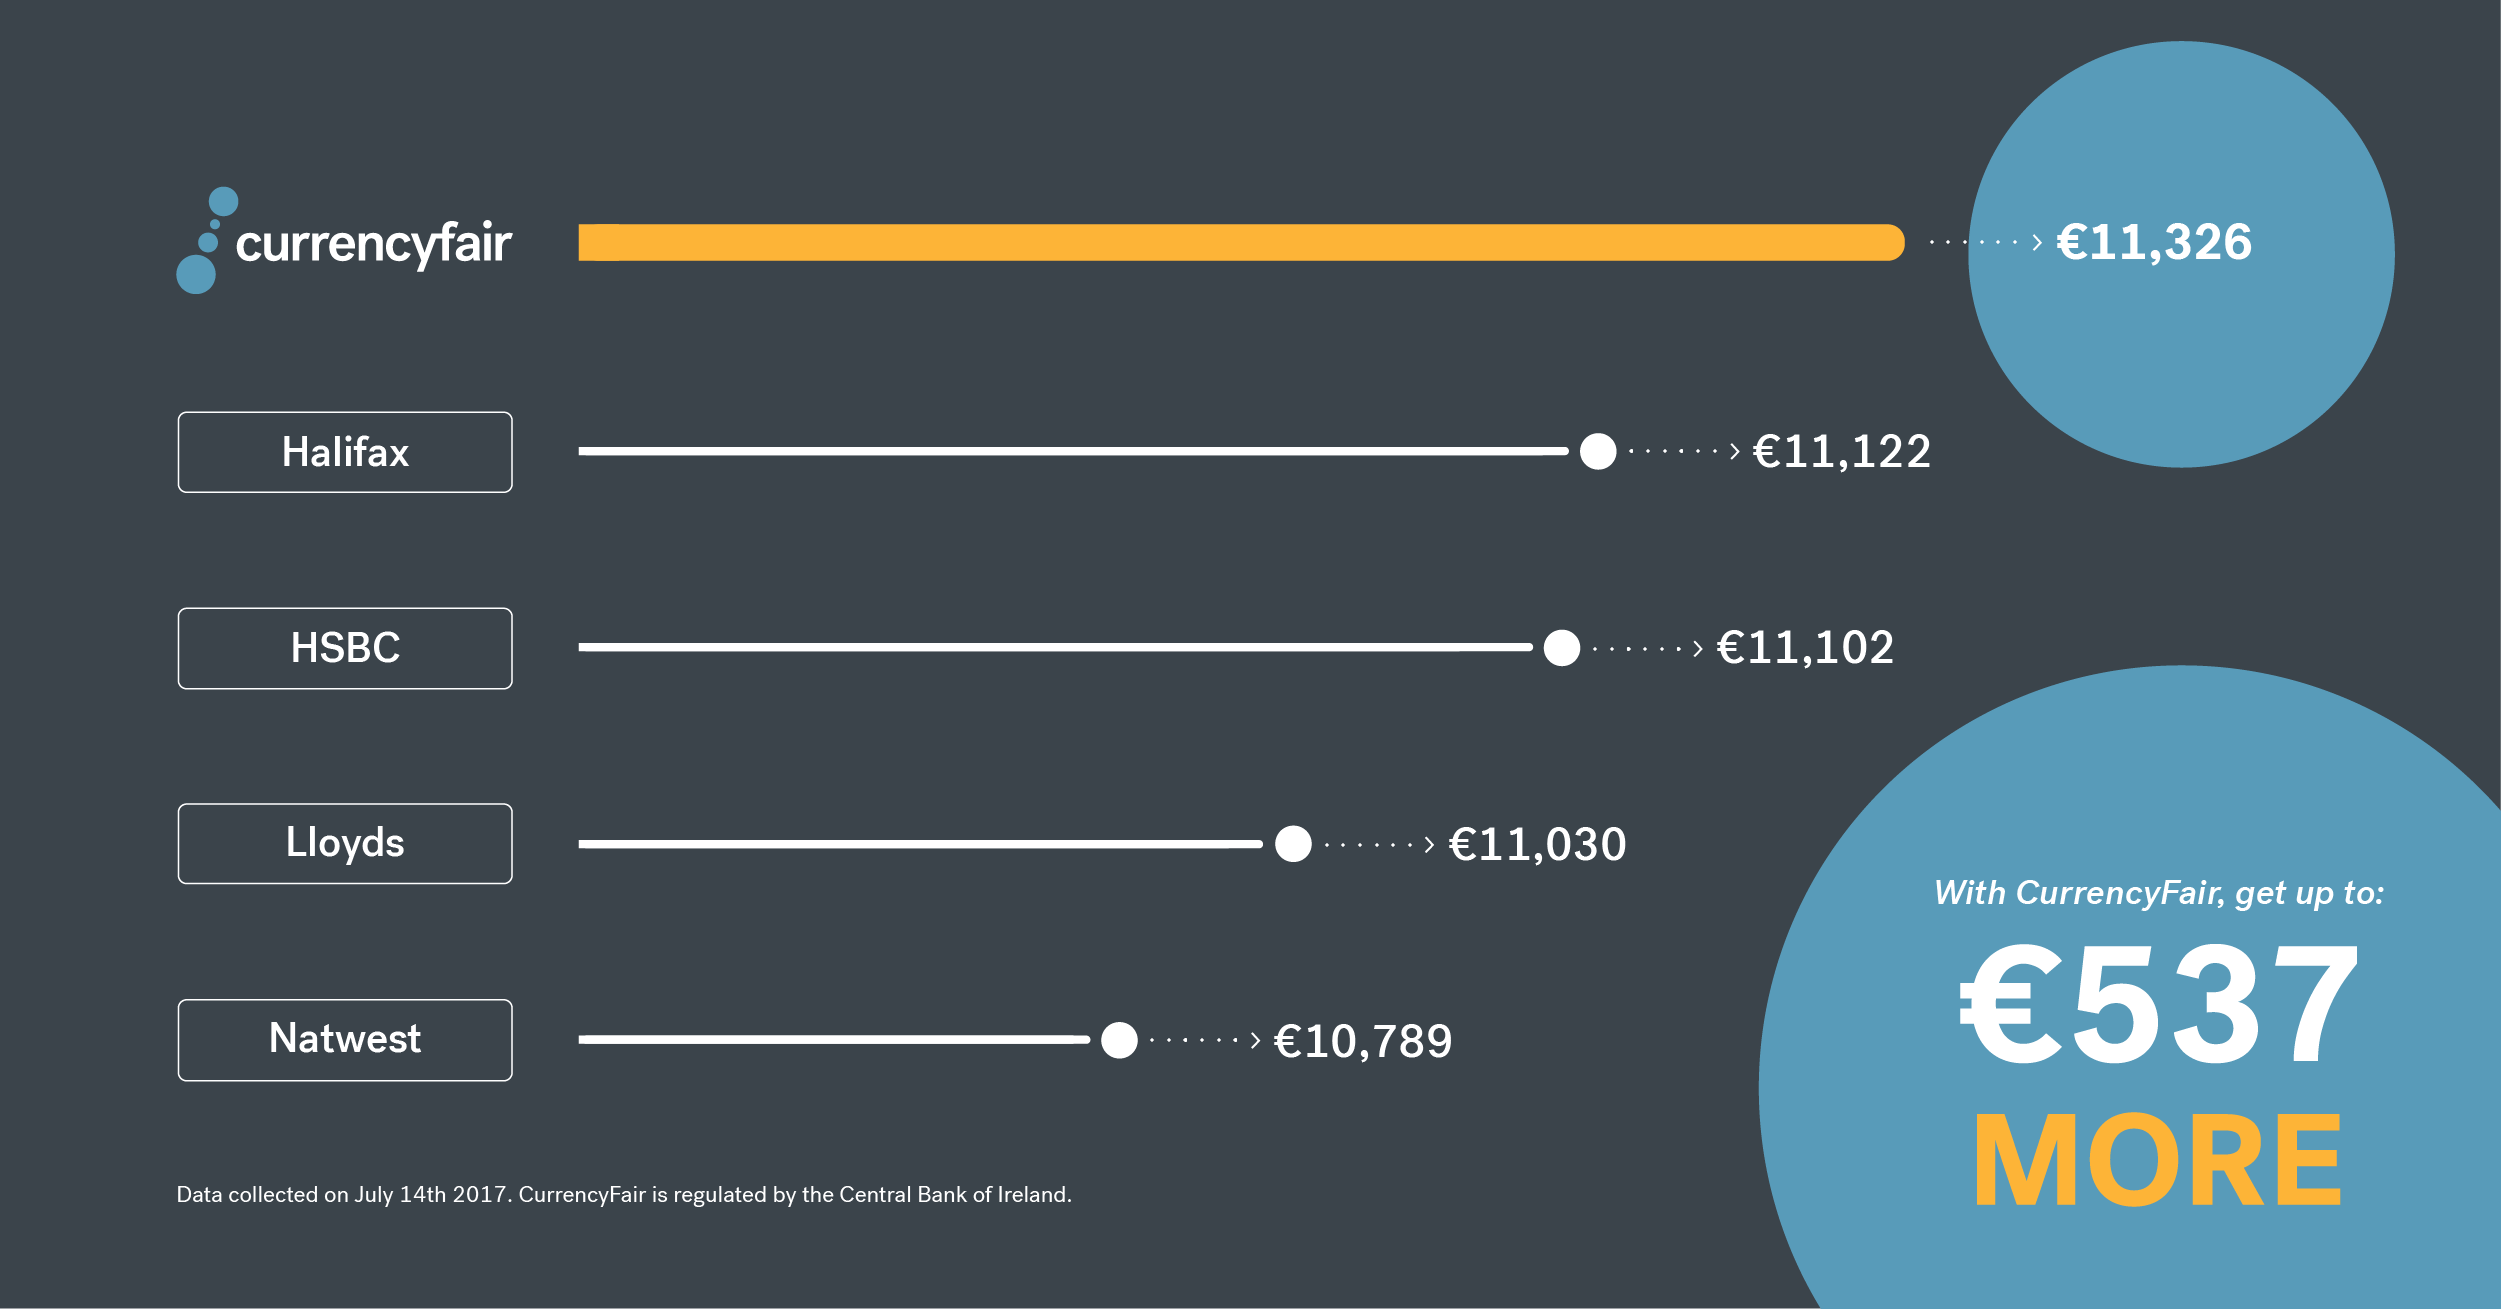 UK Banks Money Transfers Compared